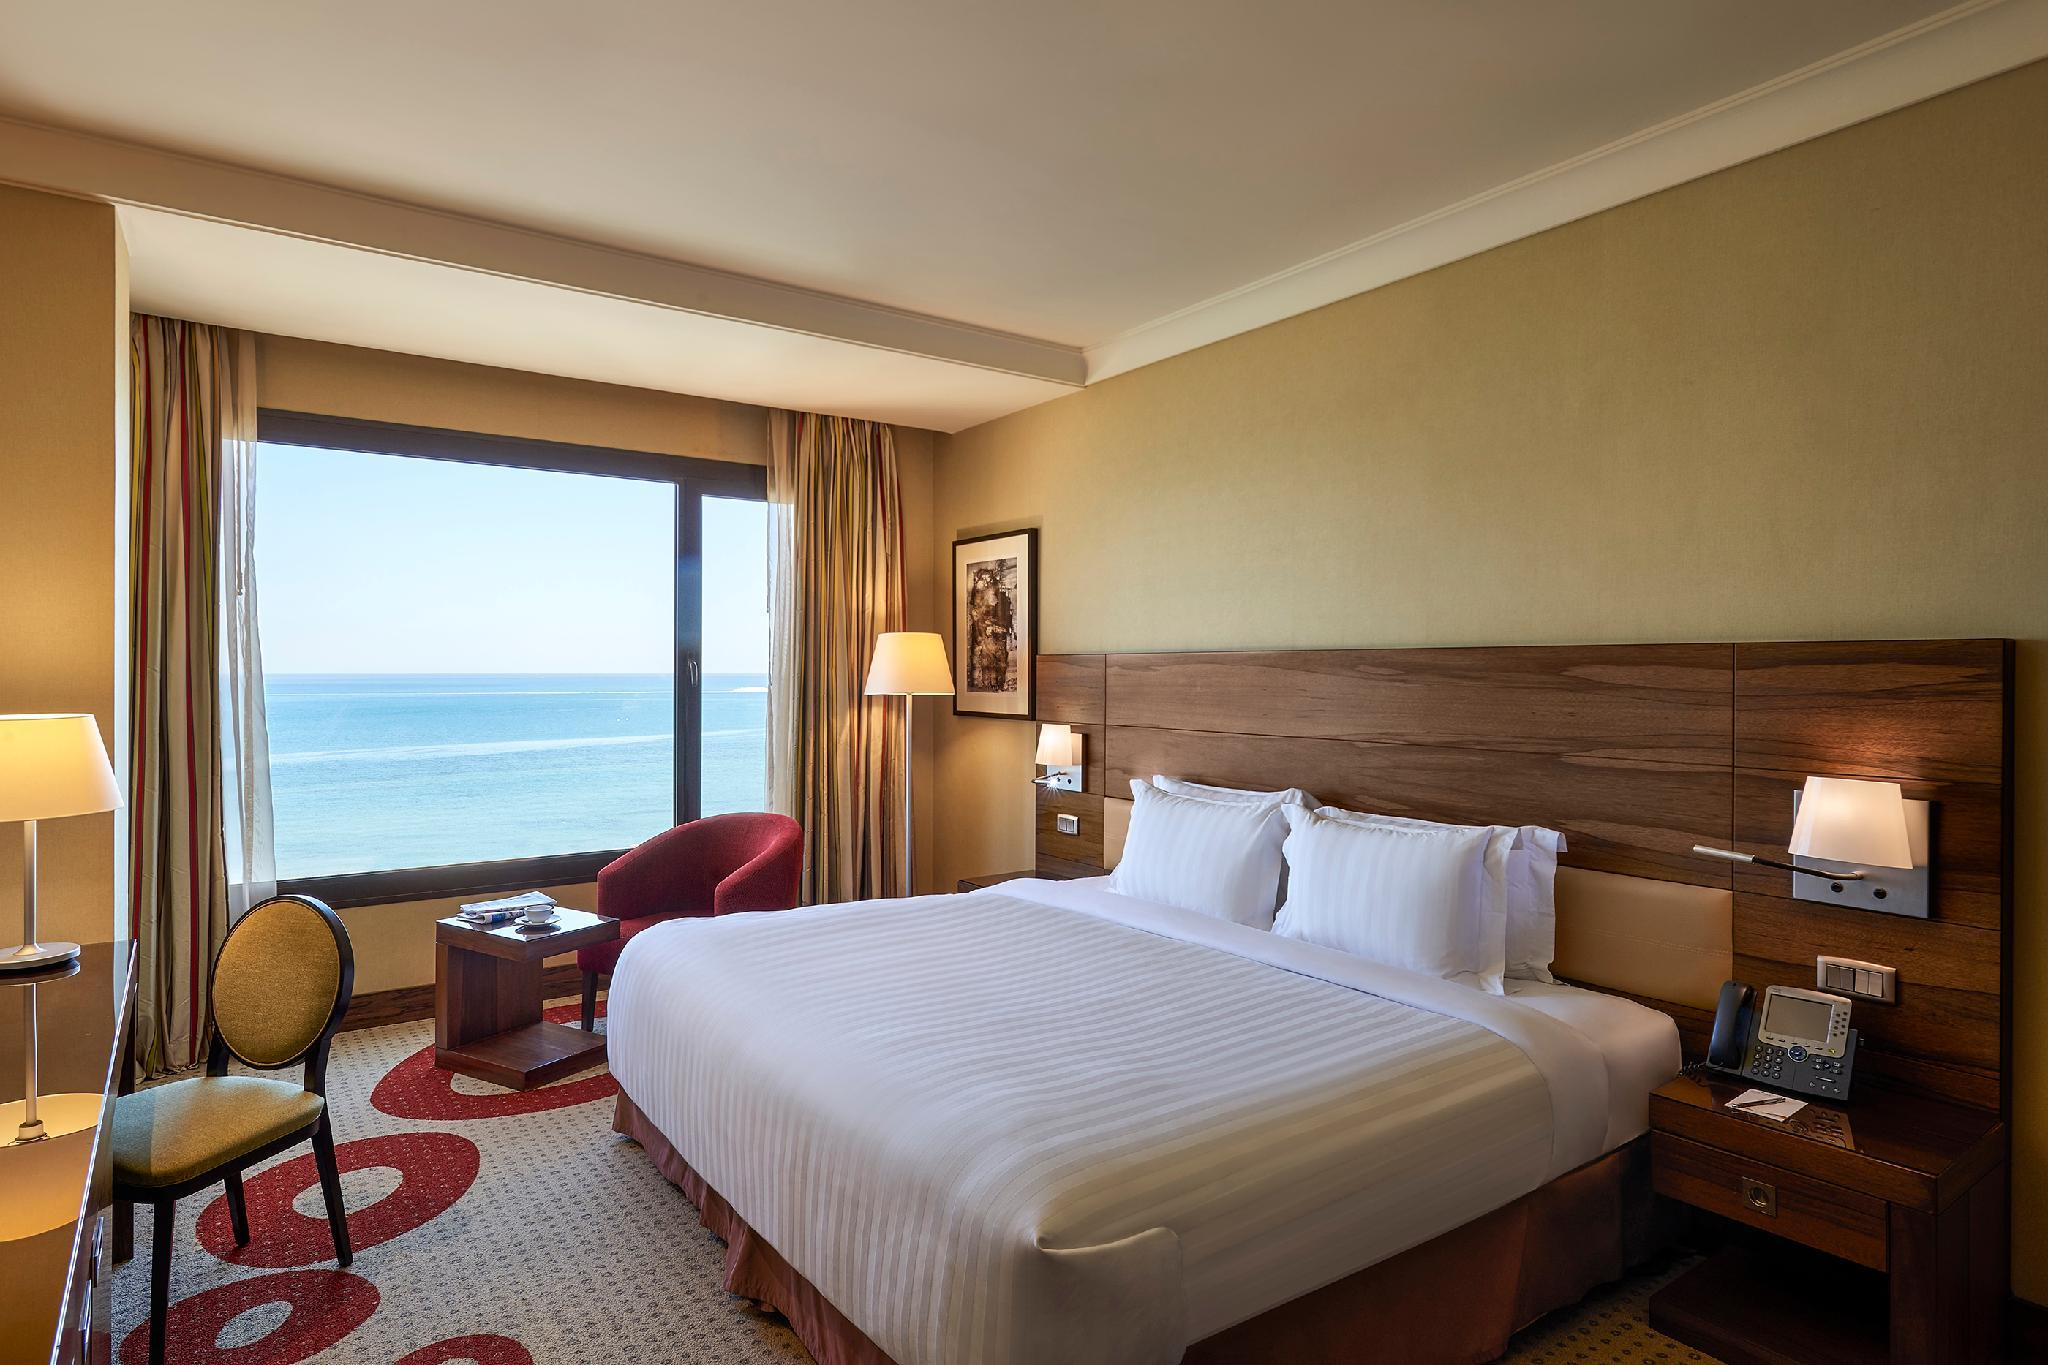 Quarto Executivo com vista para o mar (Executive Room with Sea View)